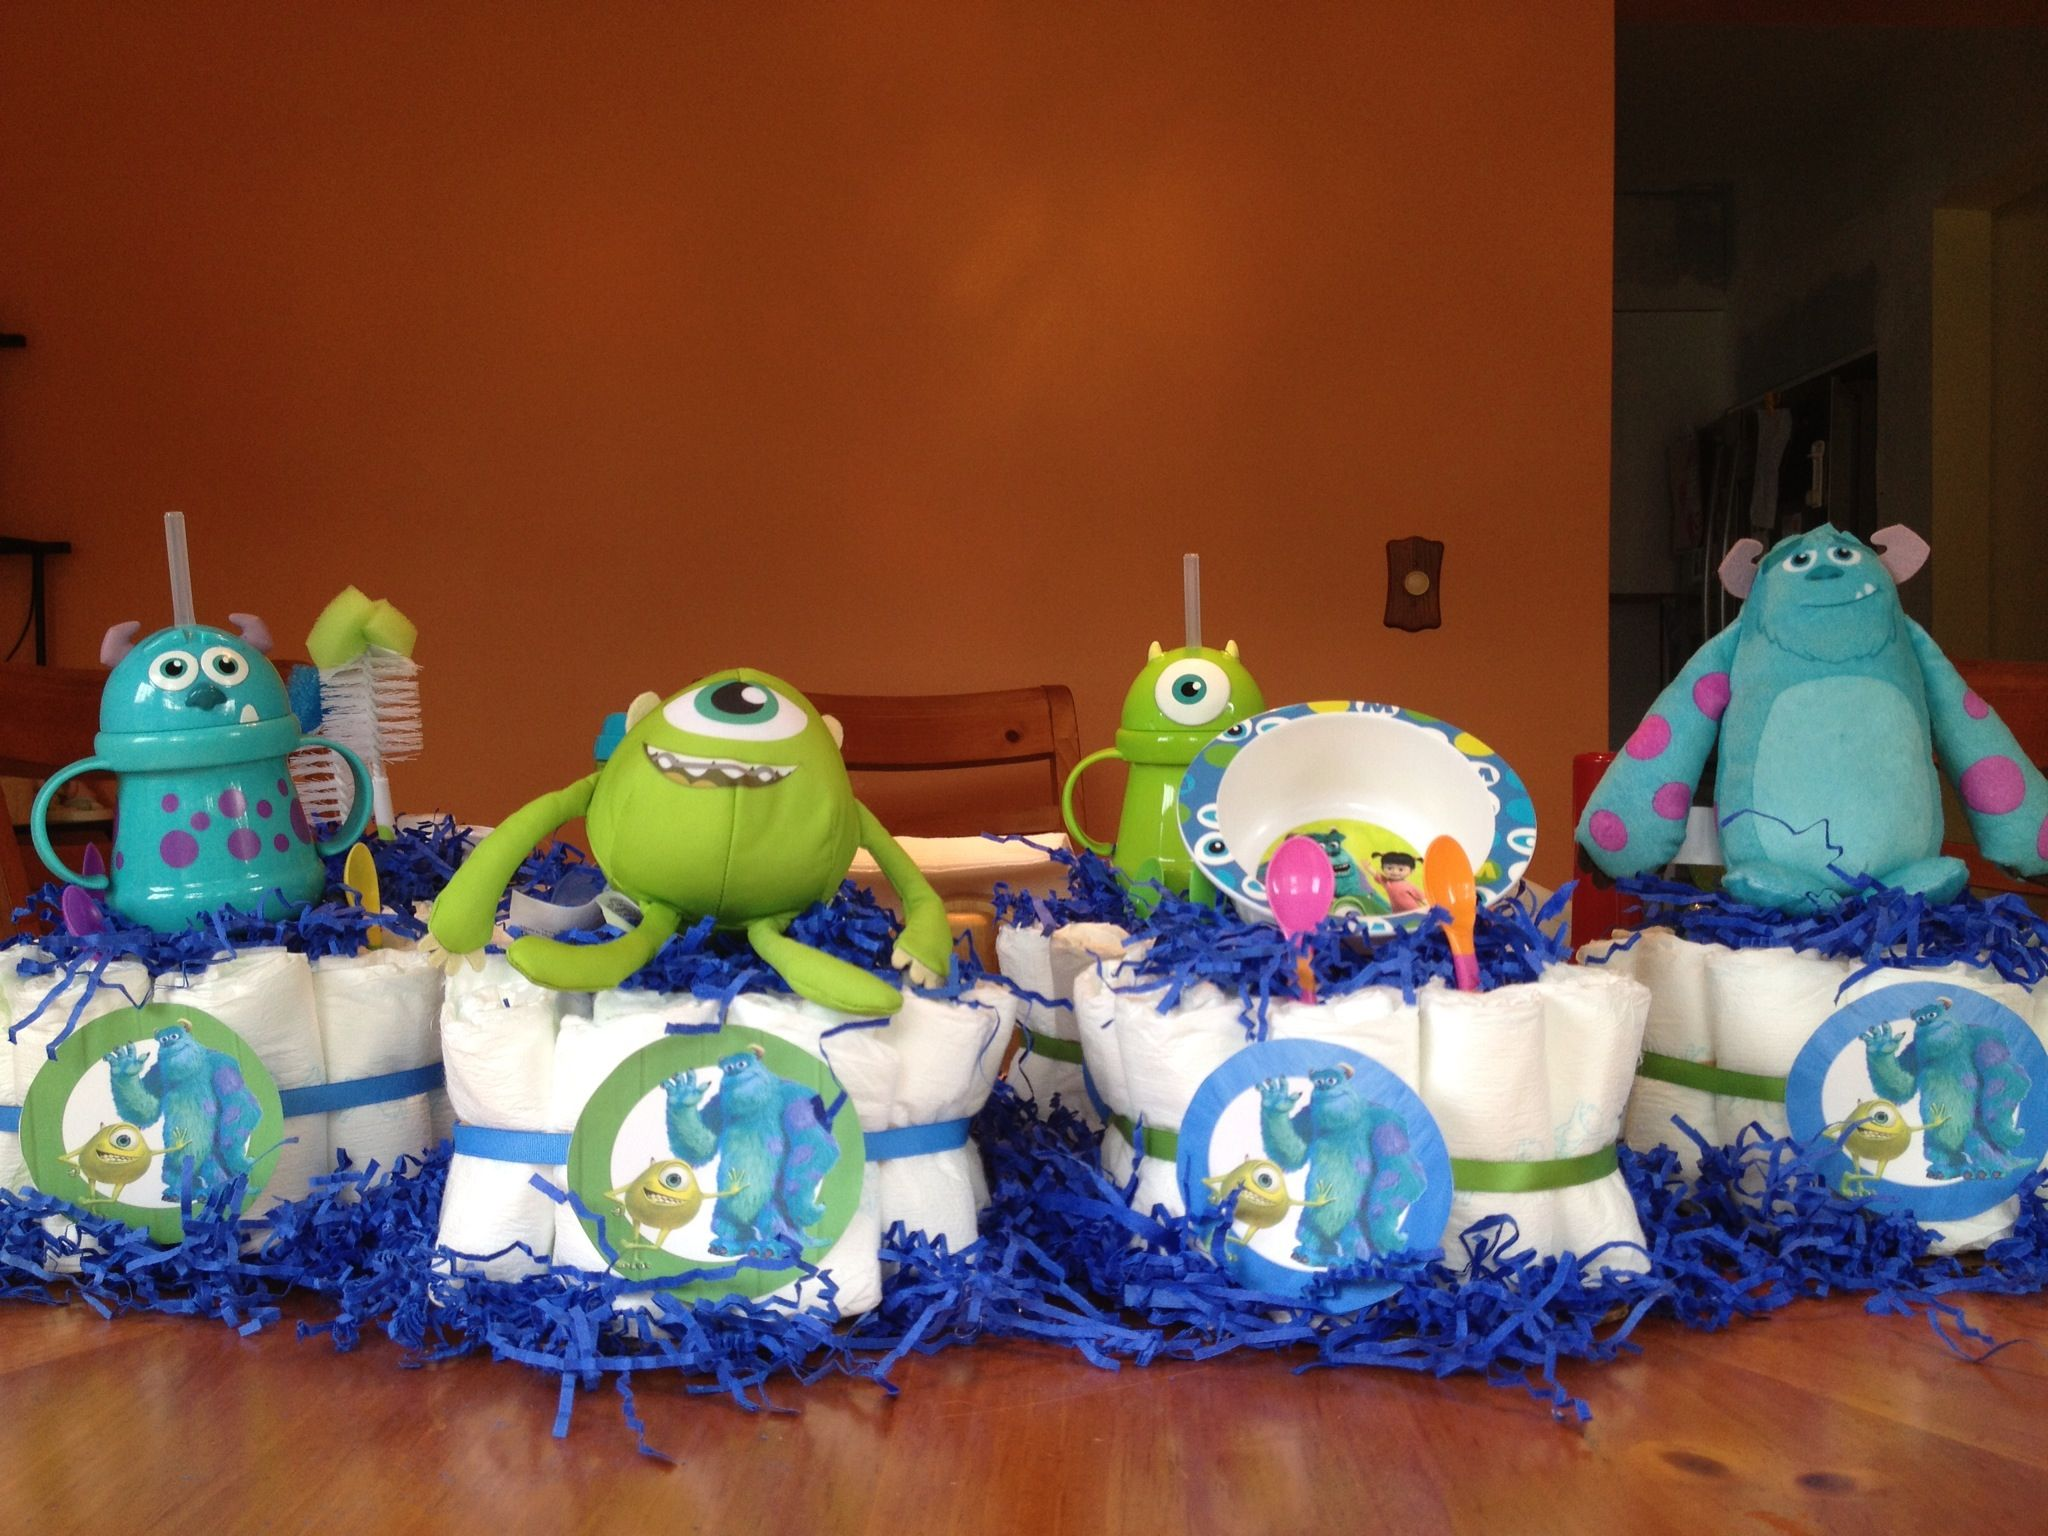 Monster Inc Baby Shower Decorations Monsters Inc Baby Shower Centerpiece Wild Flowers Mason Jars